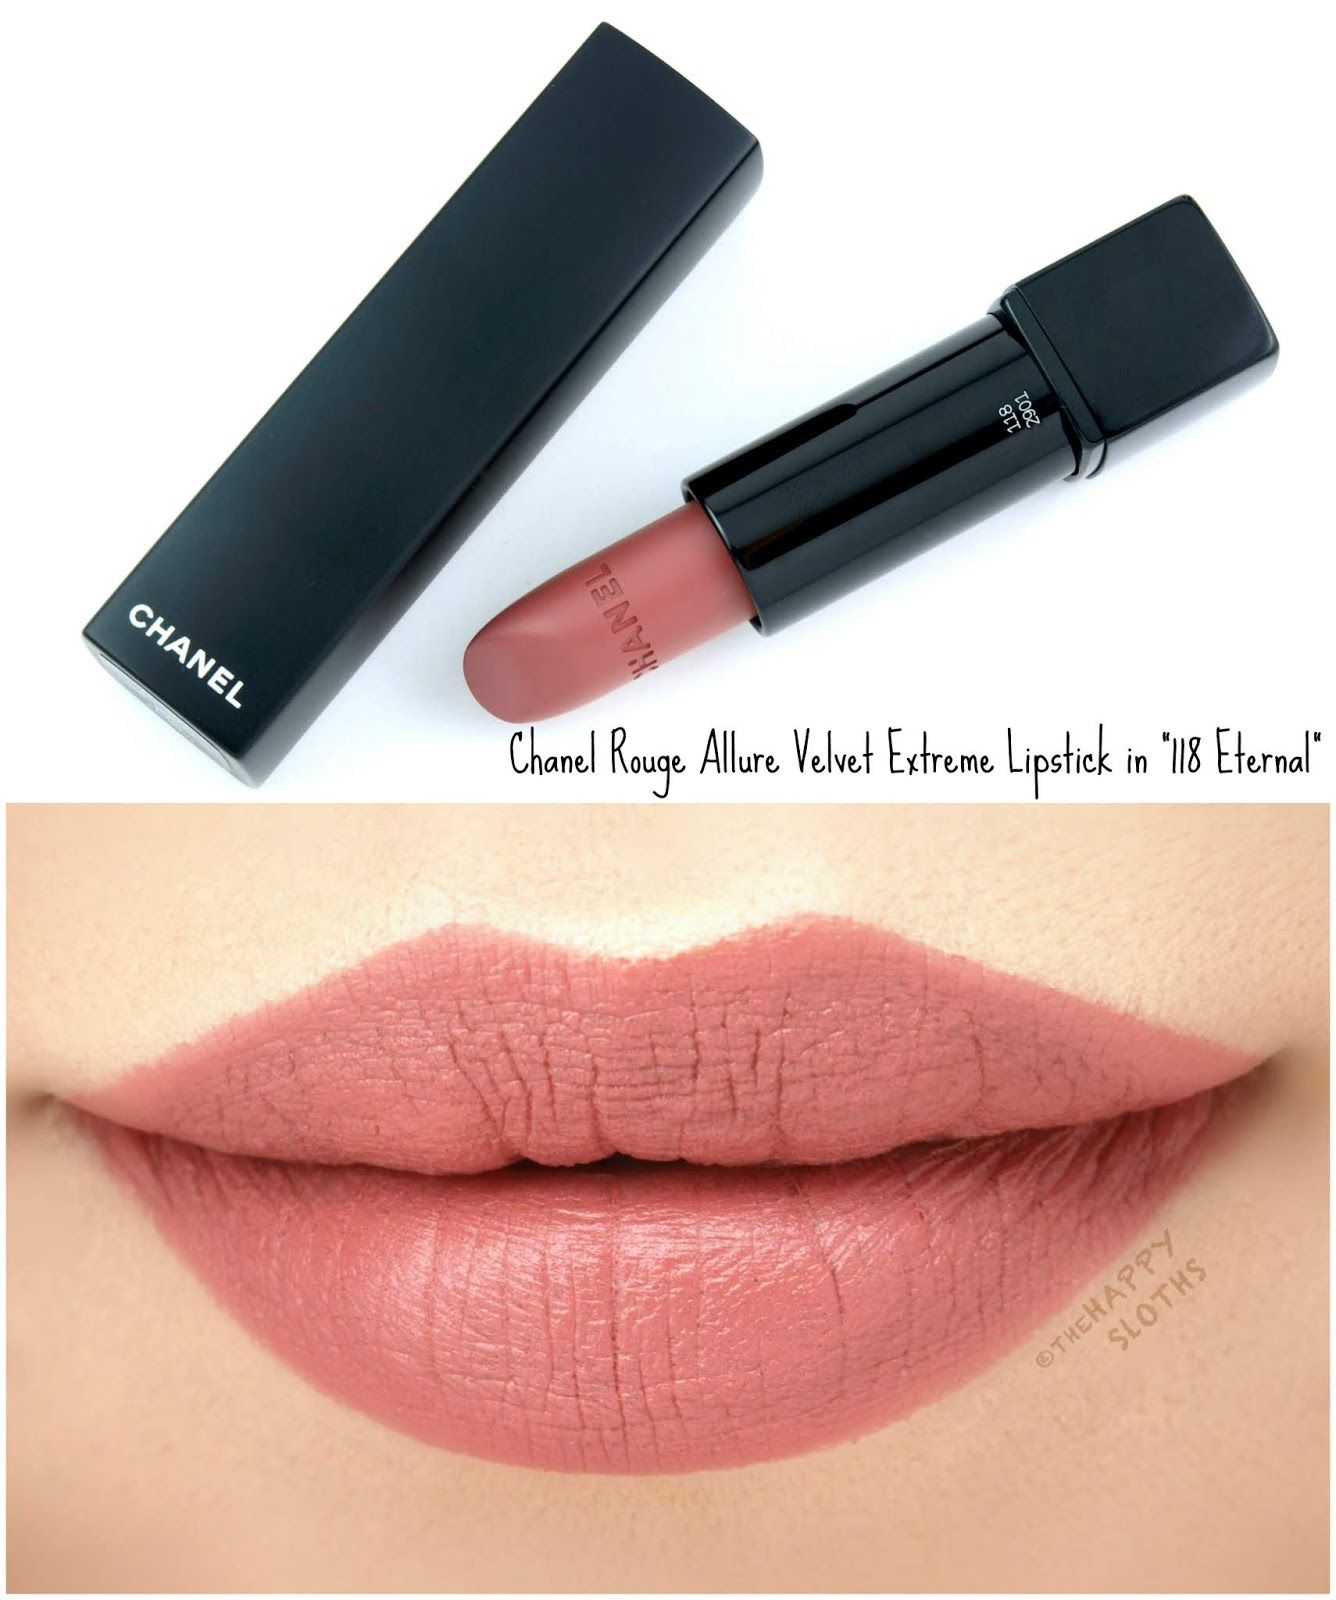 17f20b71979 Chanel | Rouge Allure Velvet Extreme Lipstick: Review and Swatches | The  Happy Sloths: Beauty & Makeup Review Blog, Swatches, Beauty Product Reviews